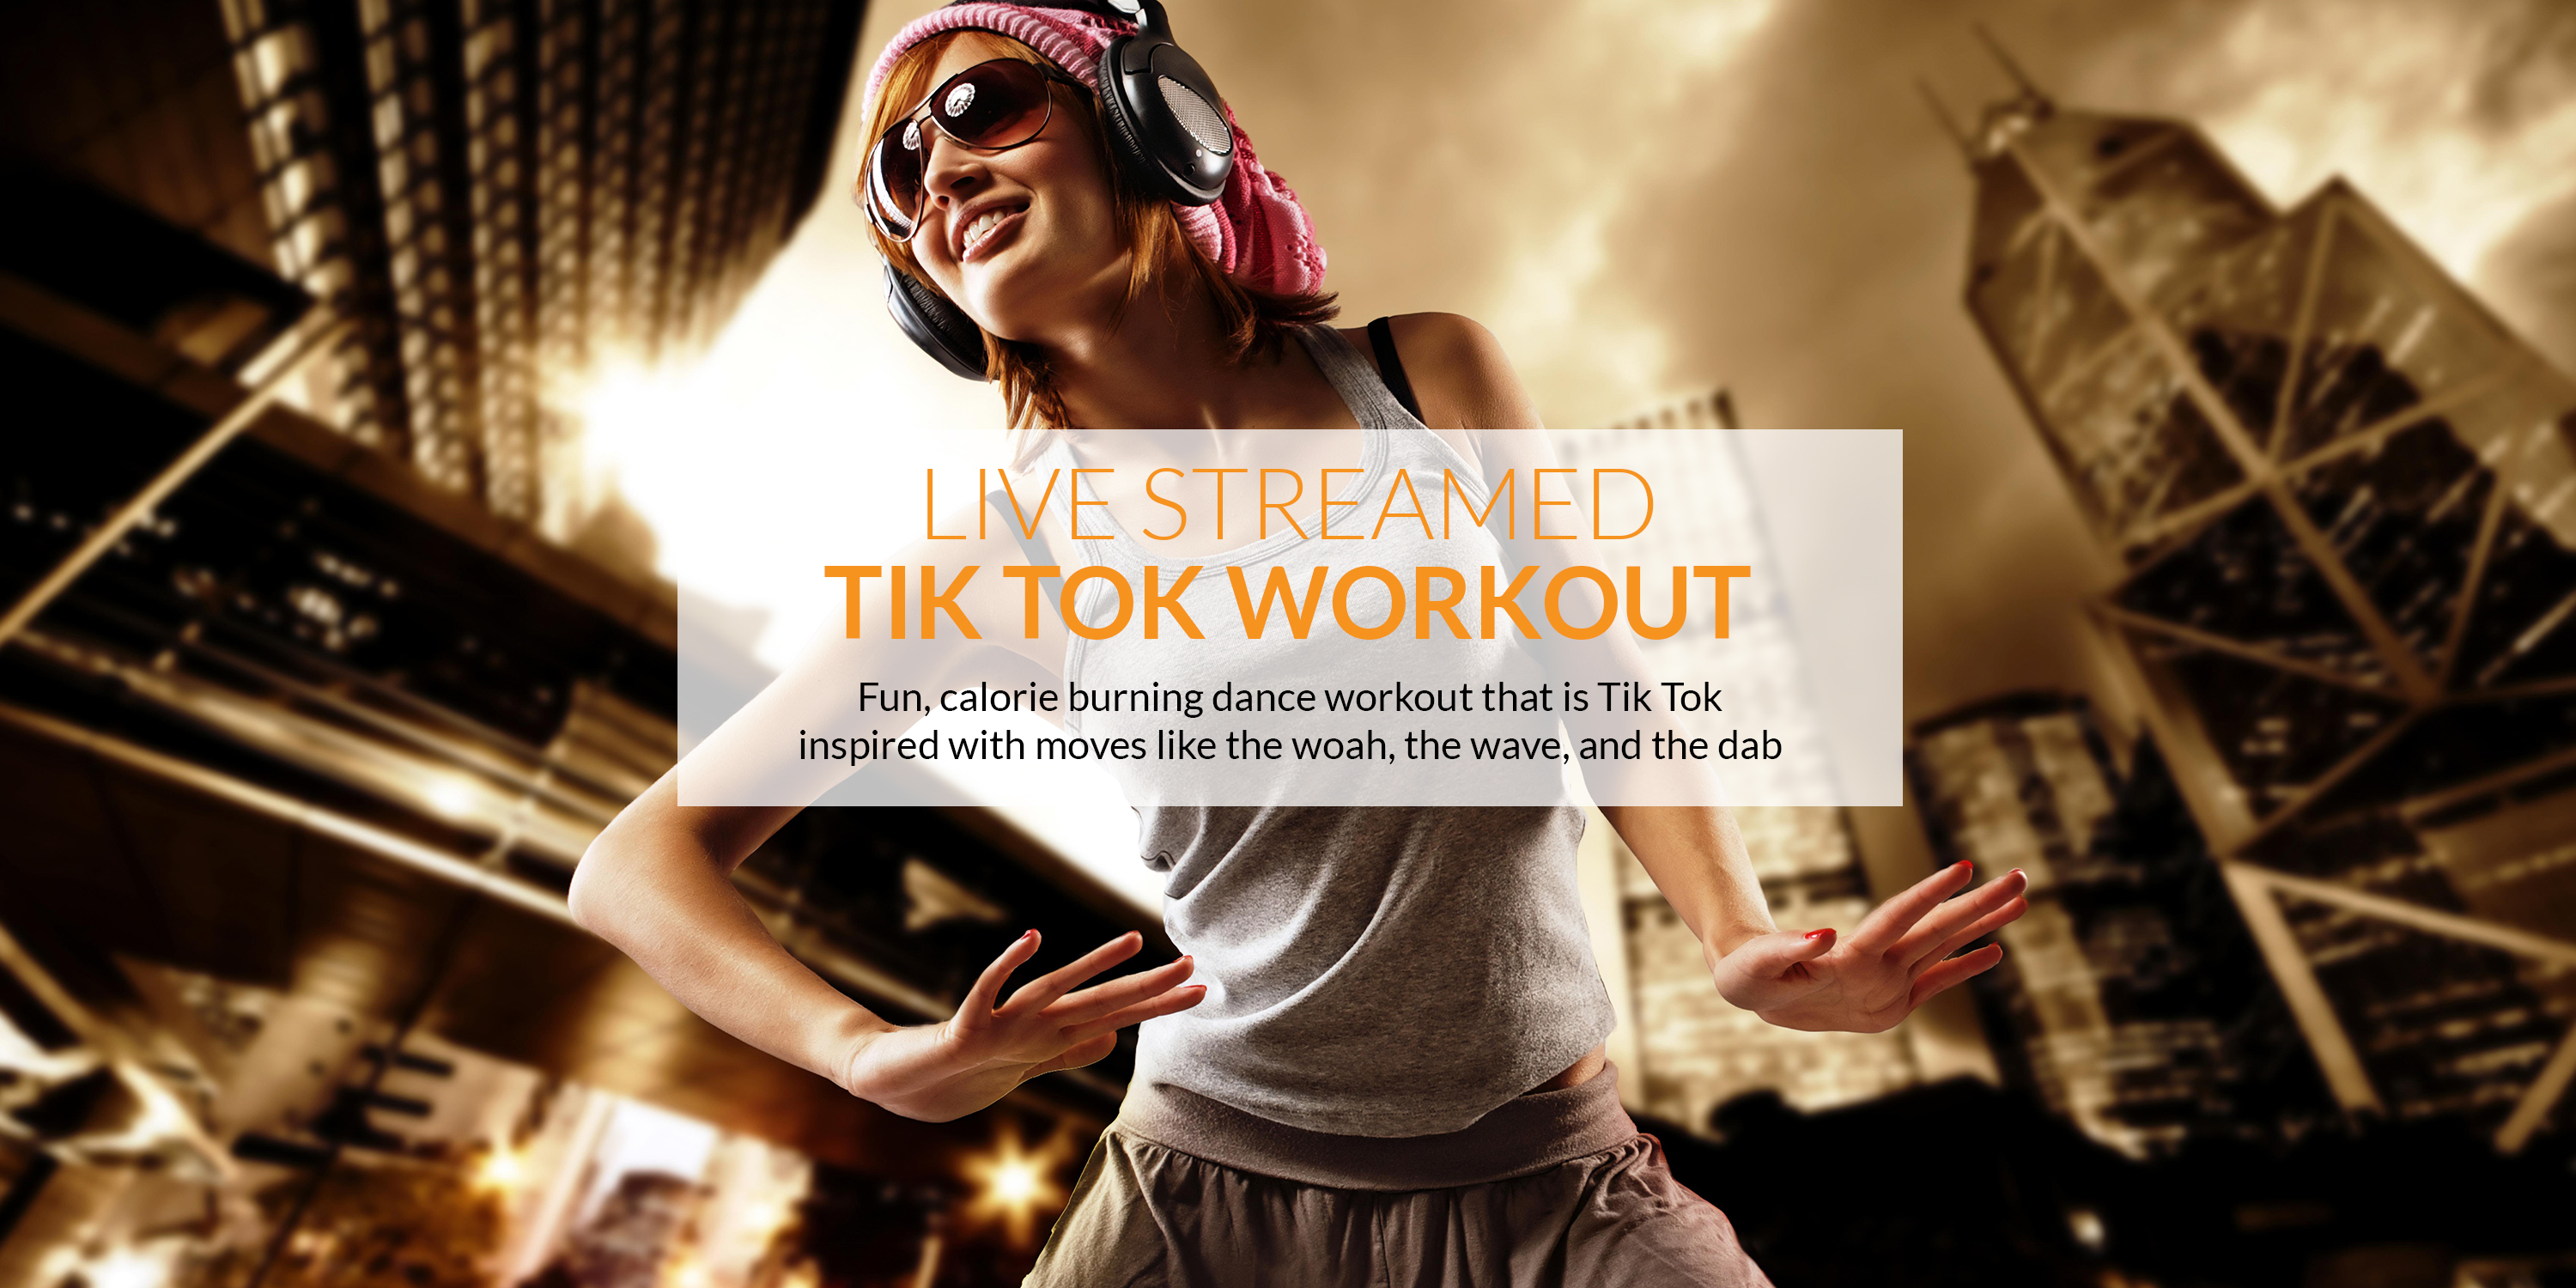 The best Tik Tok Workout live-streamed